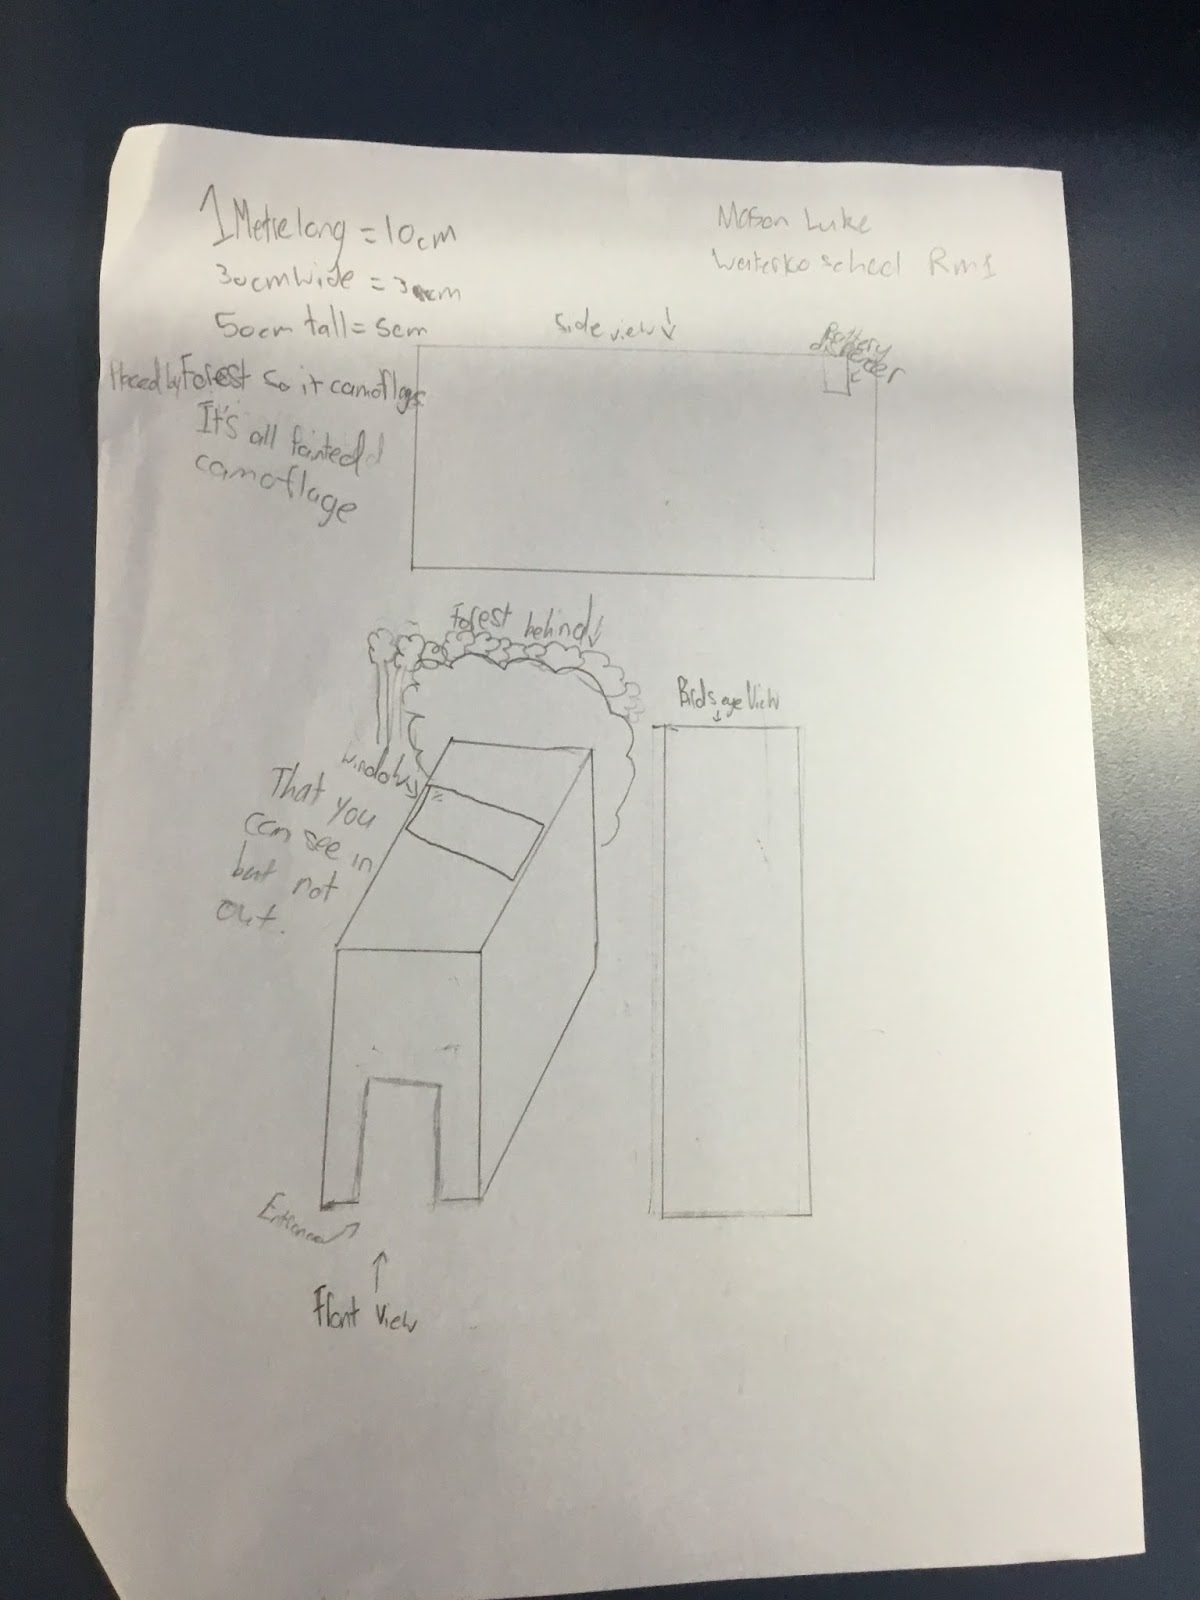 Mason and Luke's design with two way glass.